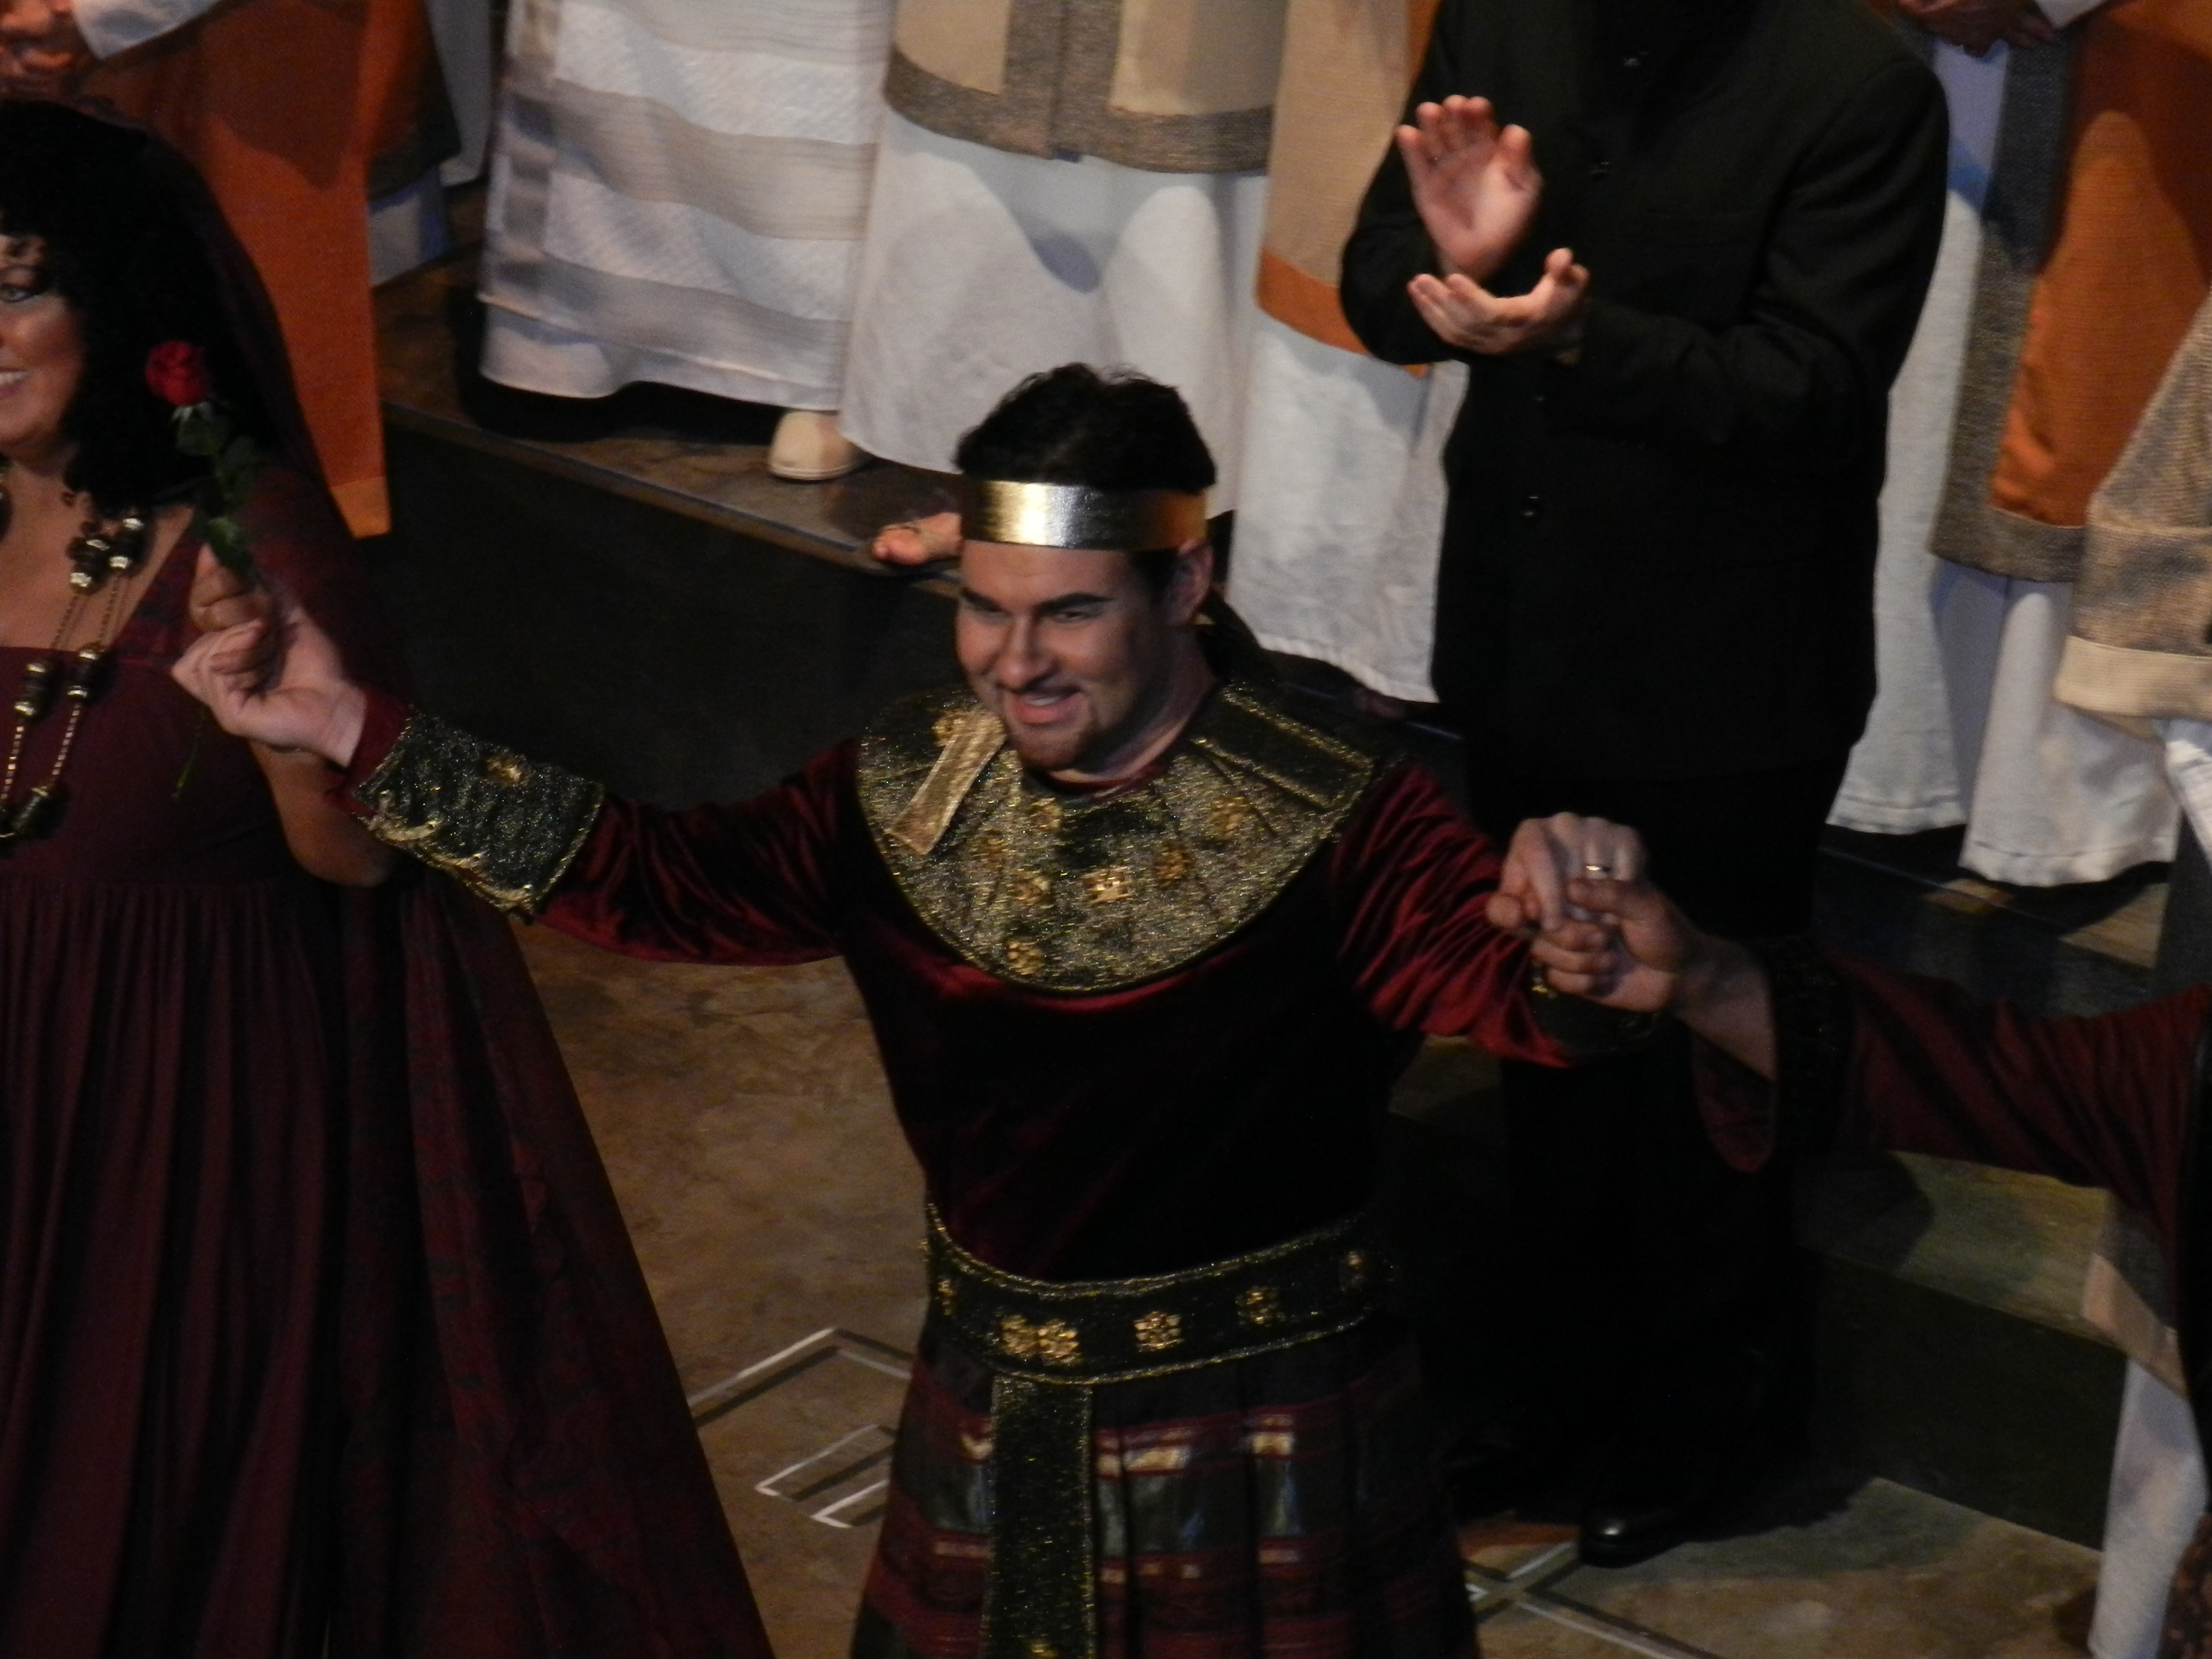 Radames applause